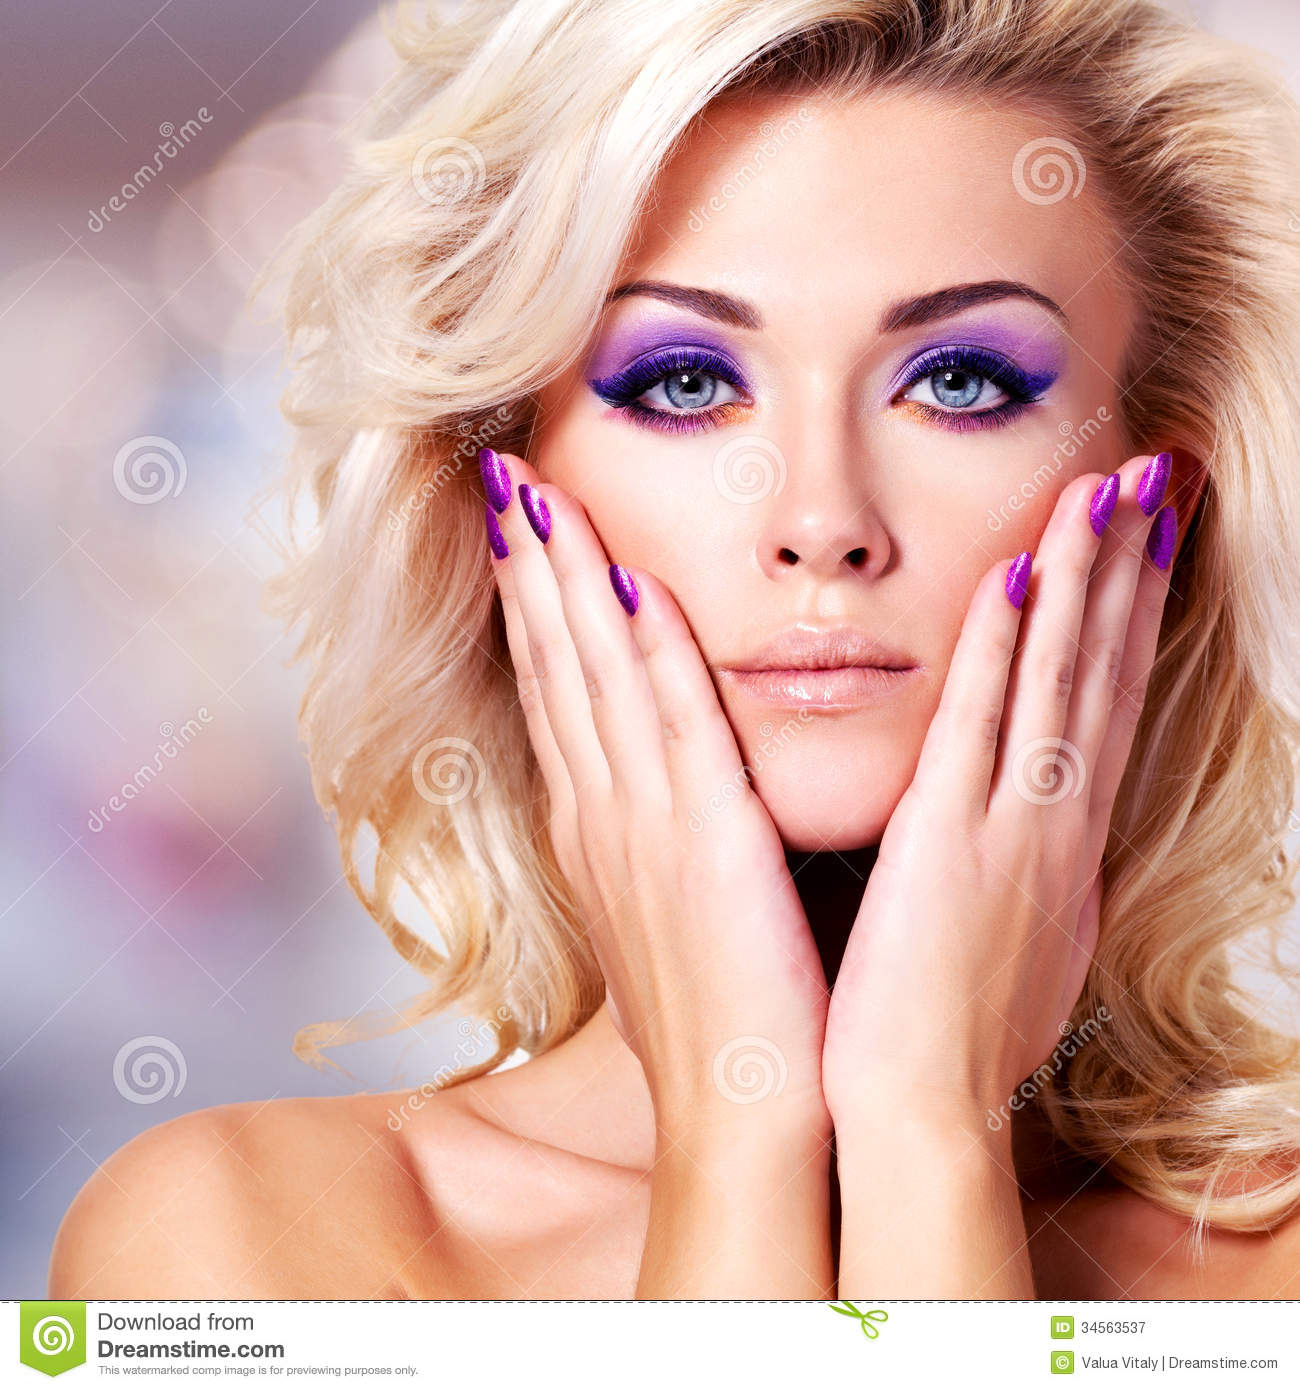 Beautiful Woman With Purple Nails And Glamour Makeup Stock Image - Image Of Blonde Makeup 34563537